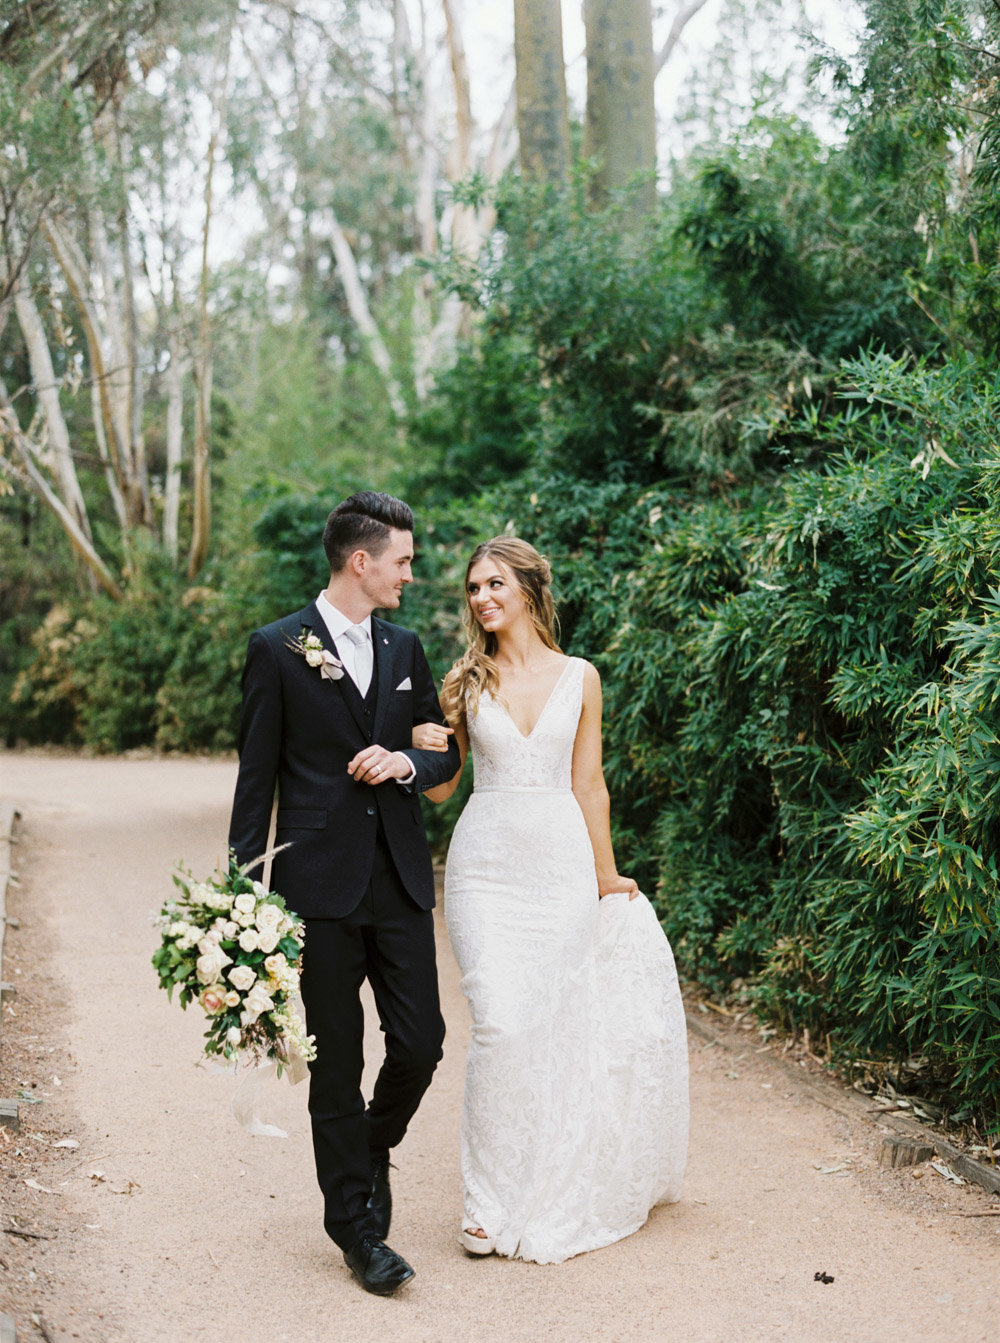 Dubbo Taronga Western Plains Zoo Wedding by Fine Art Film Dubbo Wedding Photographer Sheri McMahon-00014